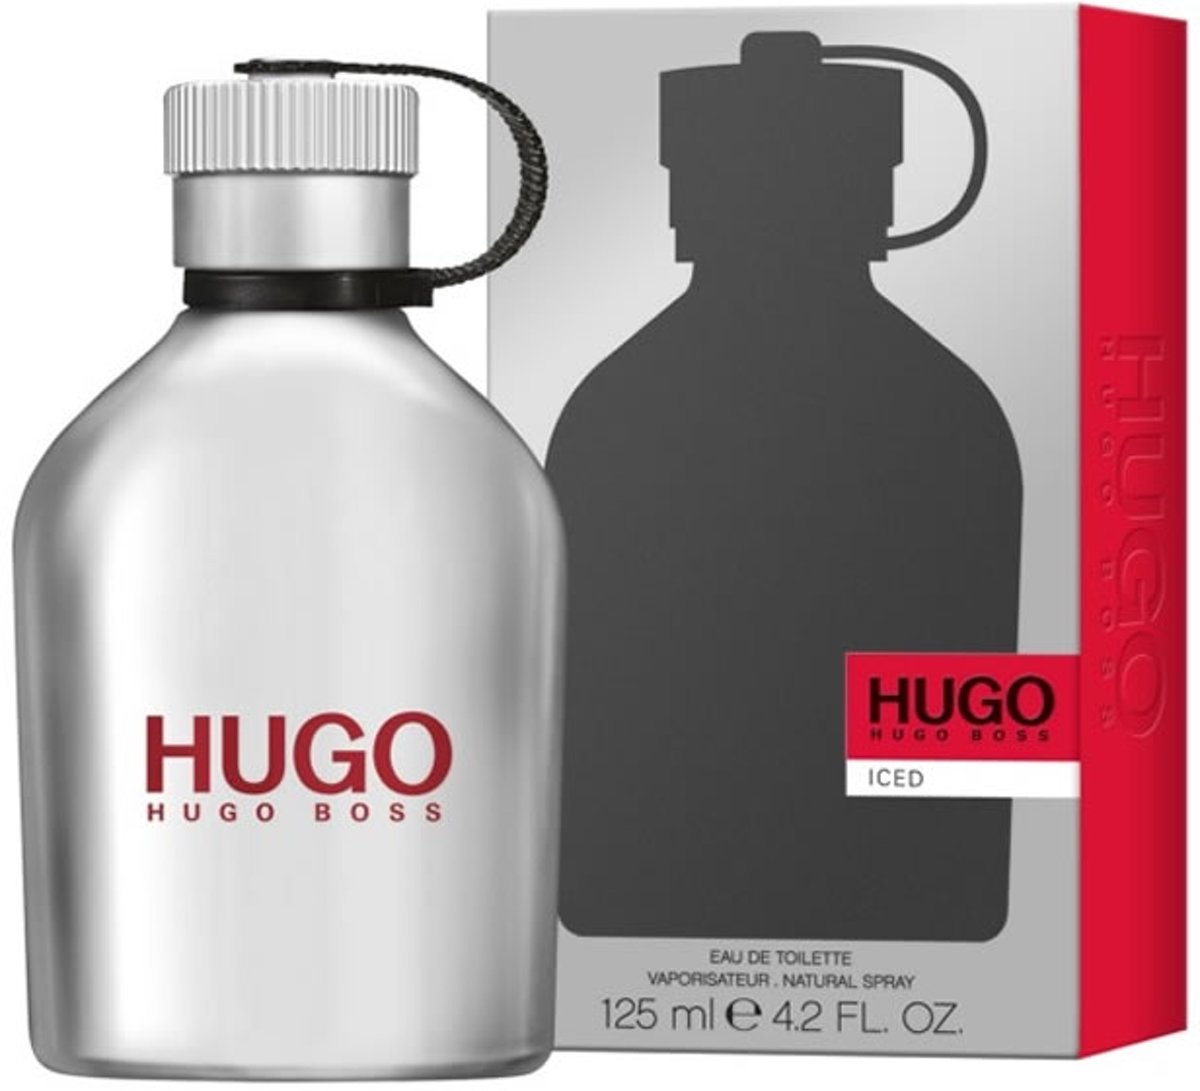 MULTI BUNDEL 2 stuks Hugo Boss Iced Eau De Toilette Spray 125ml